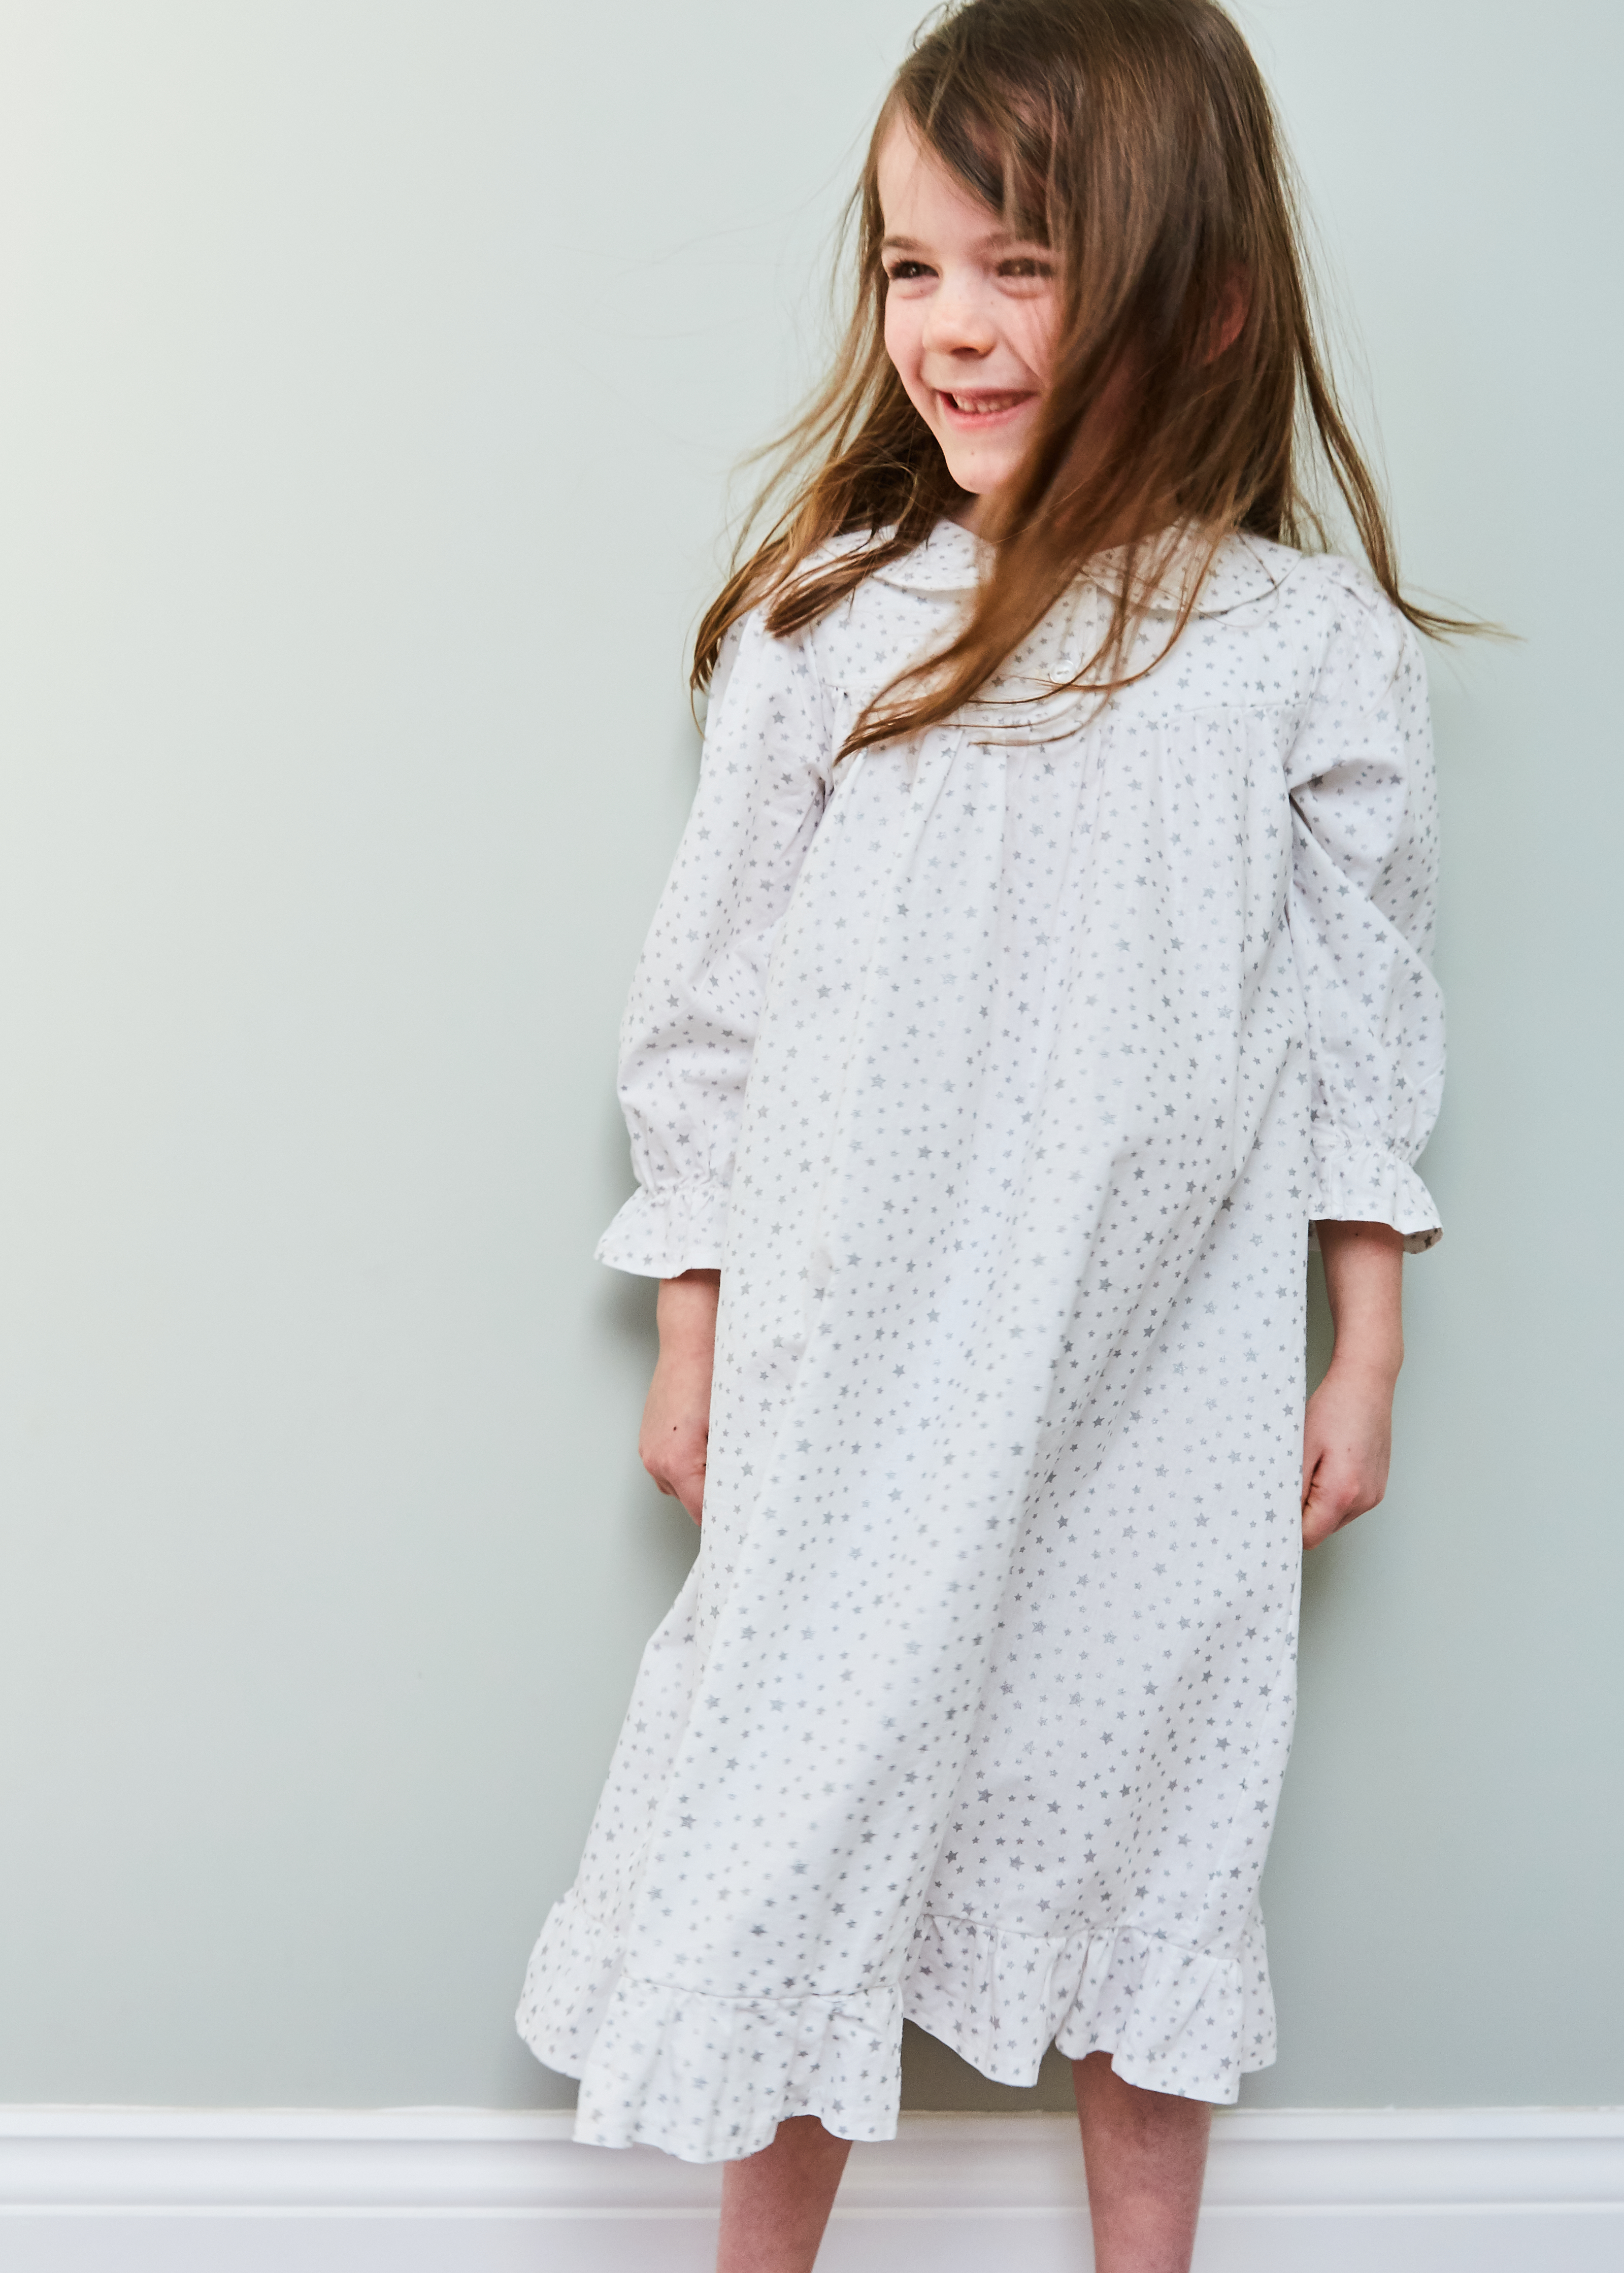 Nightie in silver stars on white